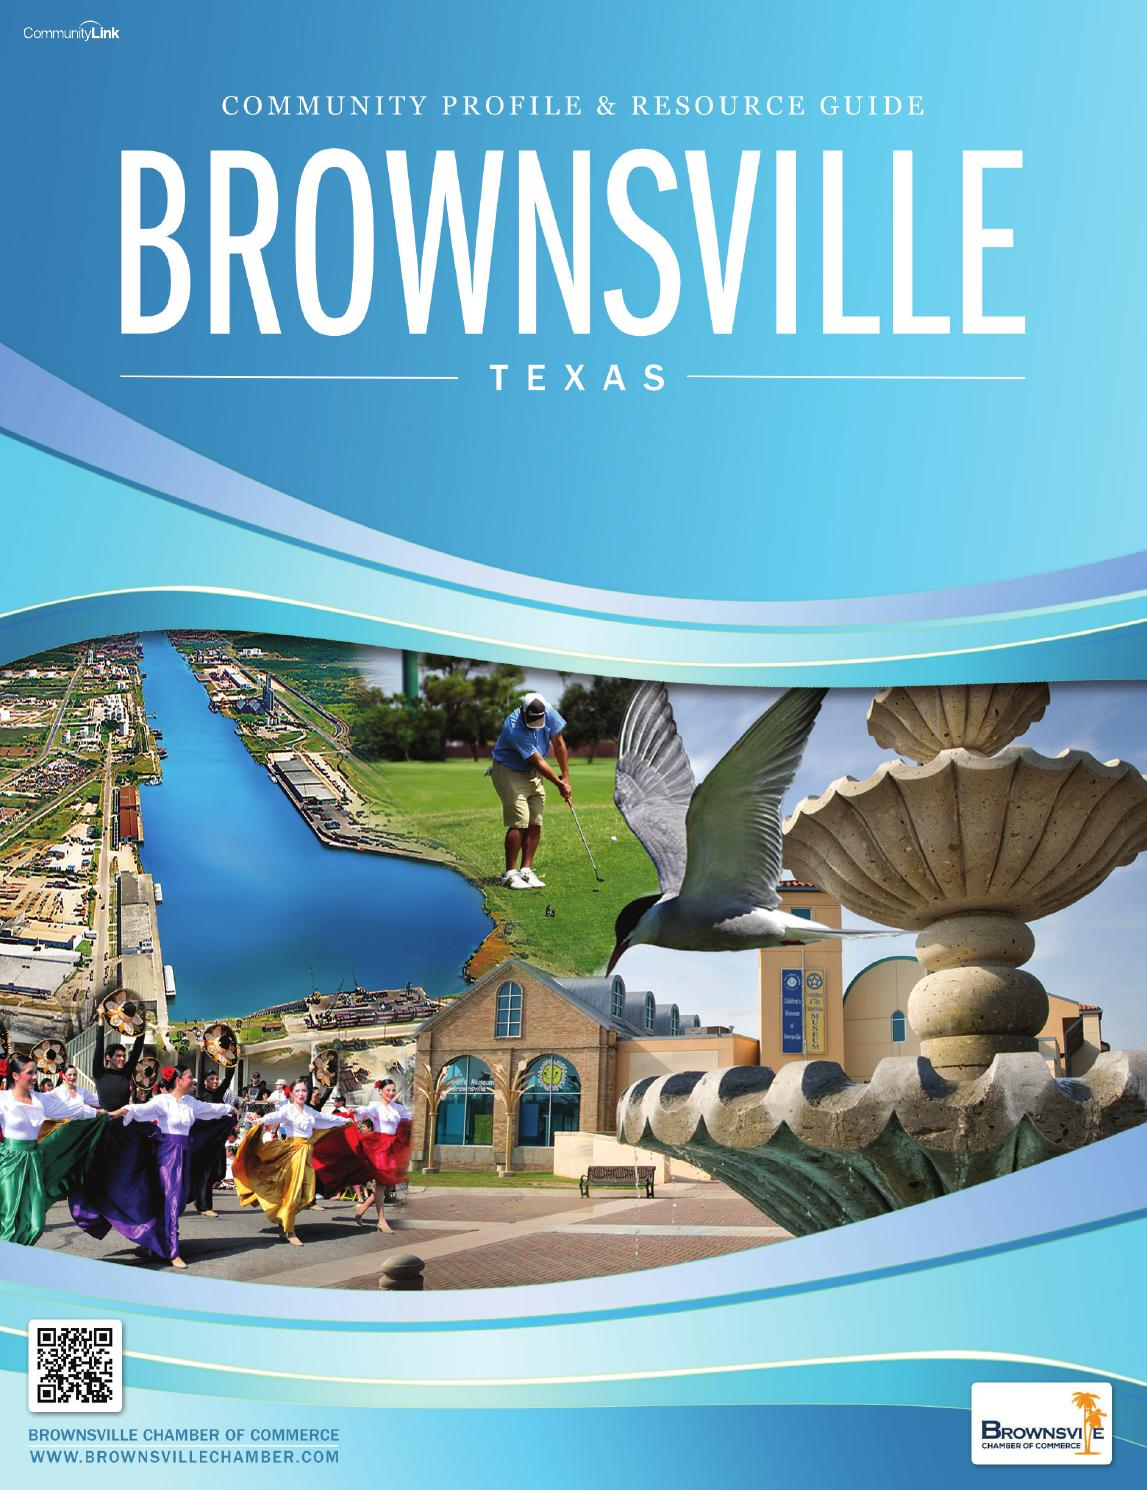 Lacks Furniture Brownsville Tx #38: Brownsville, TX 2010 Membership Directory And Community Profile By CommunityLink - Issuu